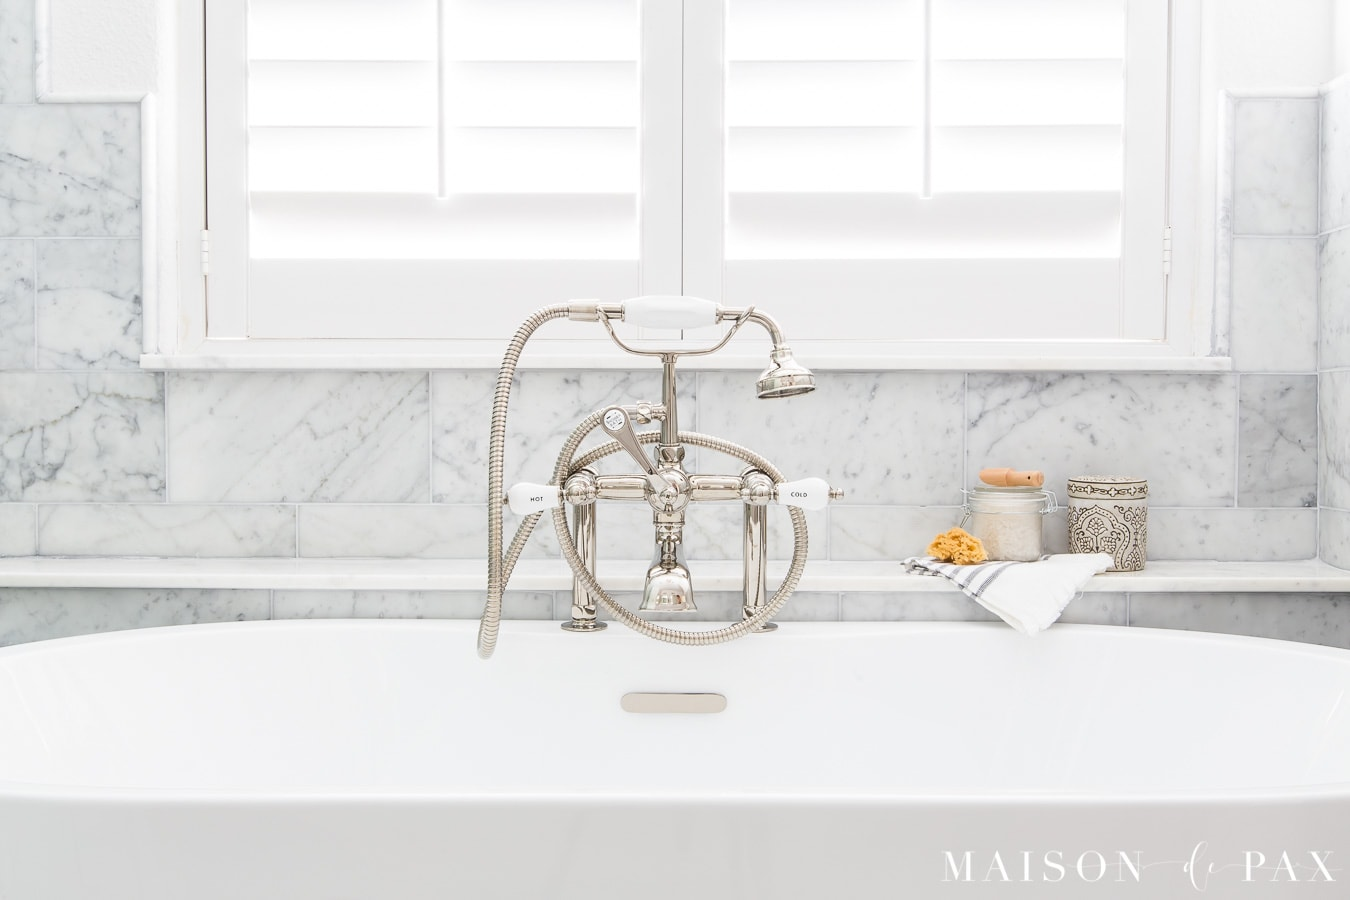 marble tub ledge under window behind freestanding tub | Maison de Pax